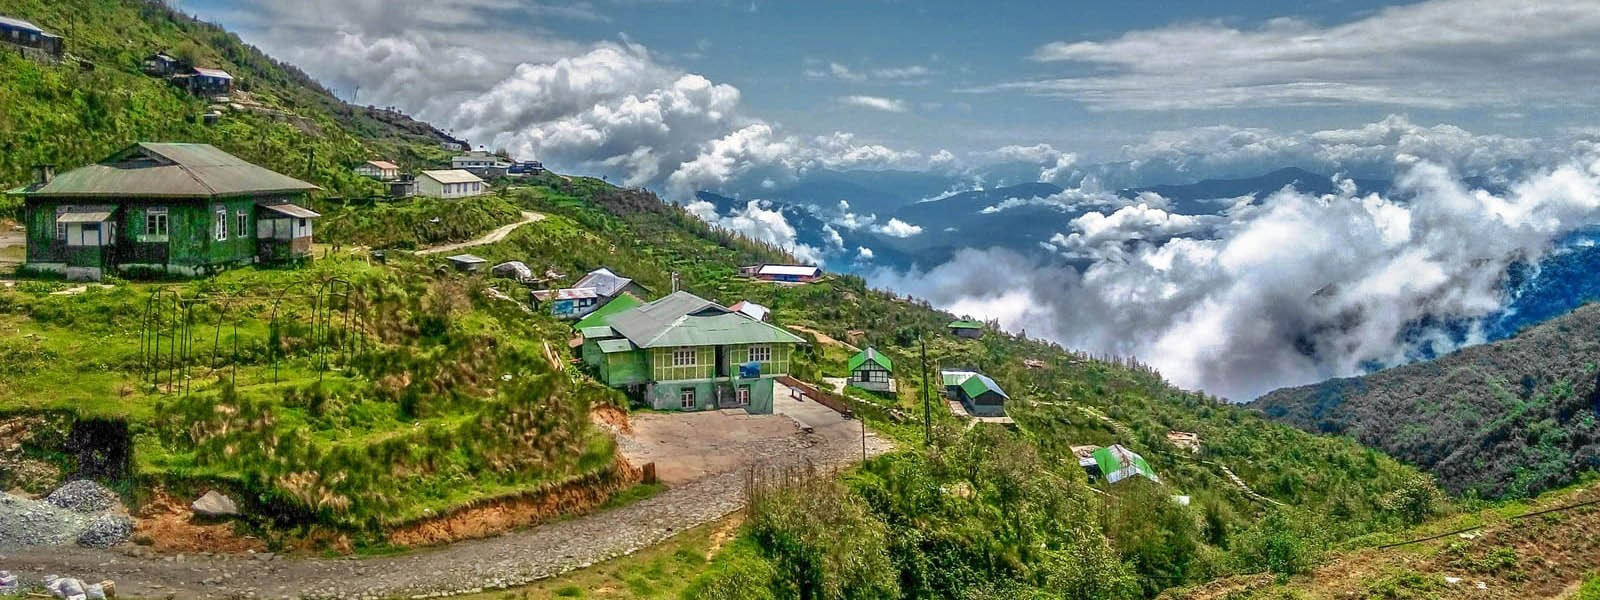 Tour around Sikkim and Darjeeling